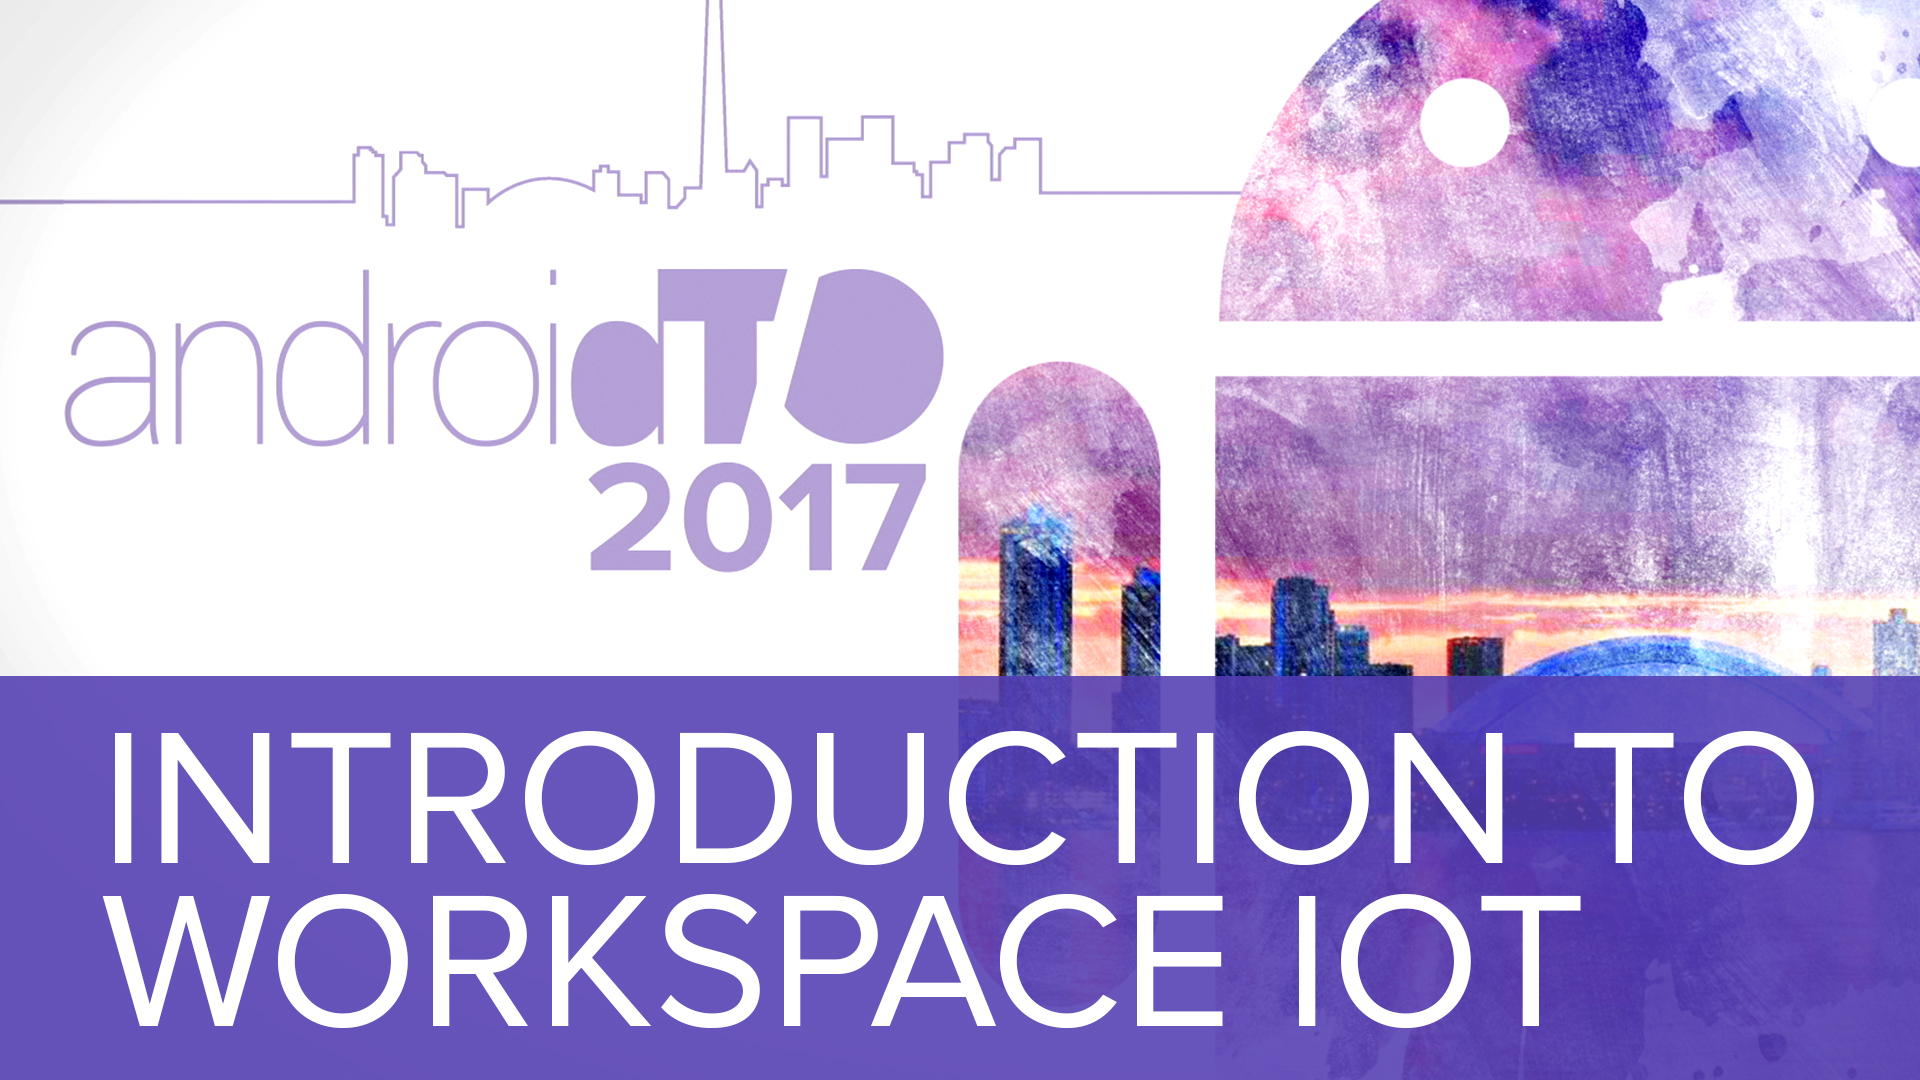 Introduction to Workspace IoT - Chris Matthieu